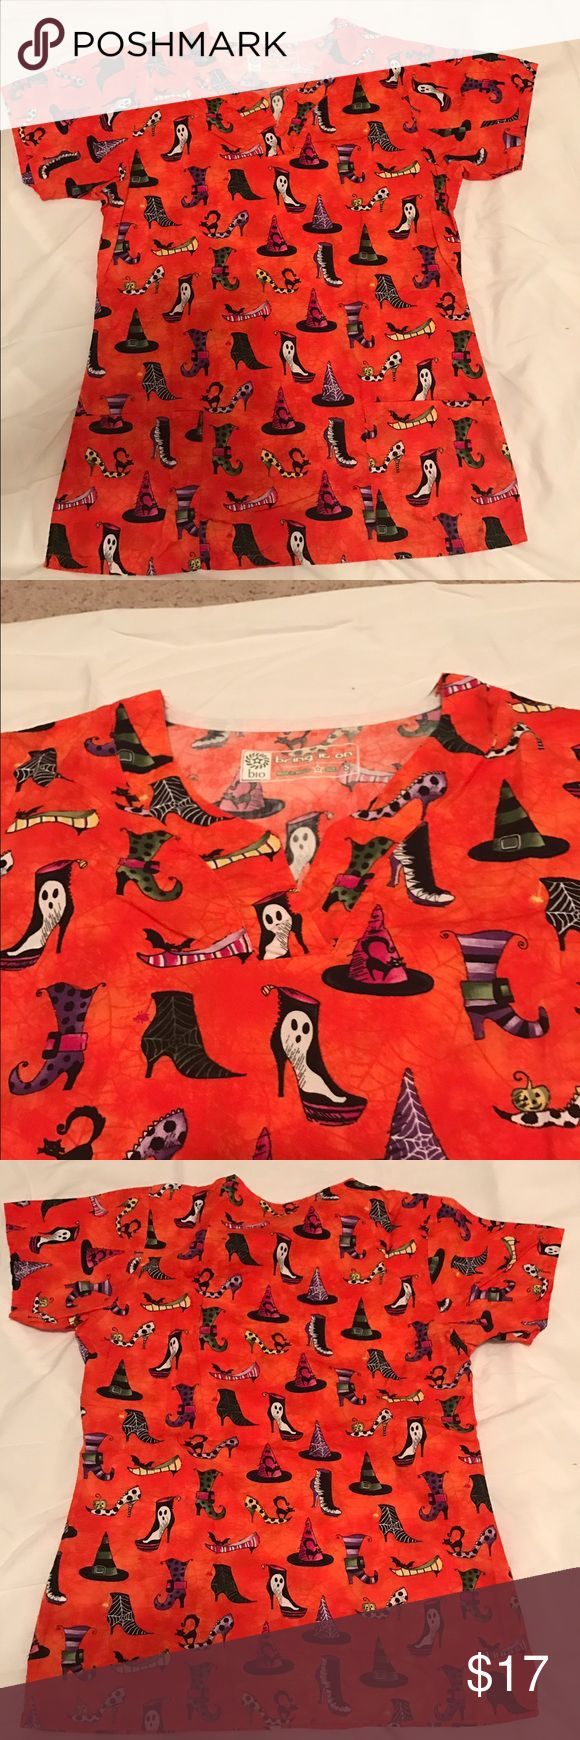 """Sassy Halloween Witch Hats & Heels Scrub Top Orange Halloween V neck scrub top with 2 pockets. Size S. 19.25"""" across front. Excellent condition. Price firm unless bundled. Bio Tops Tunics"""